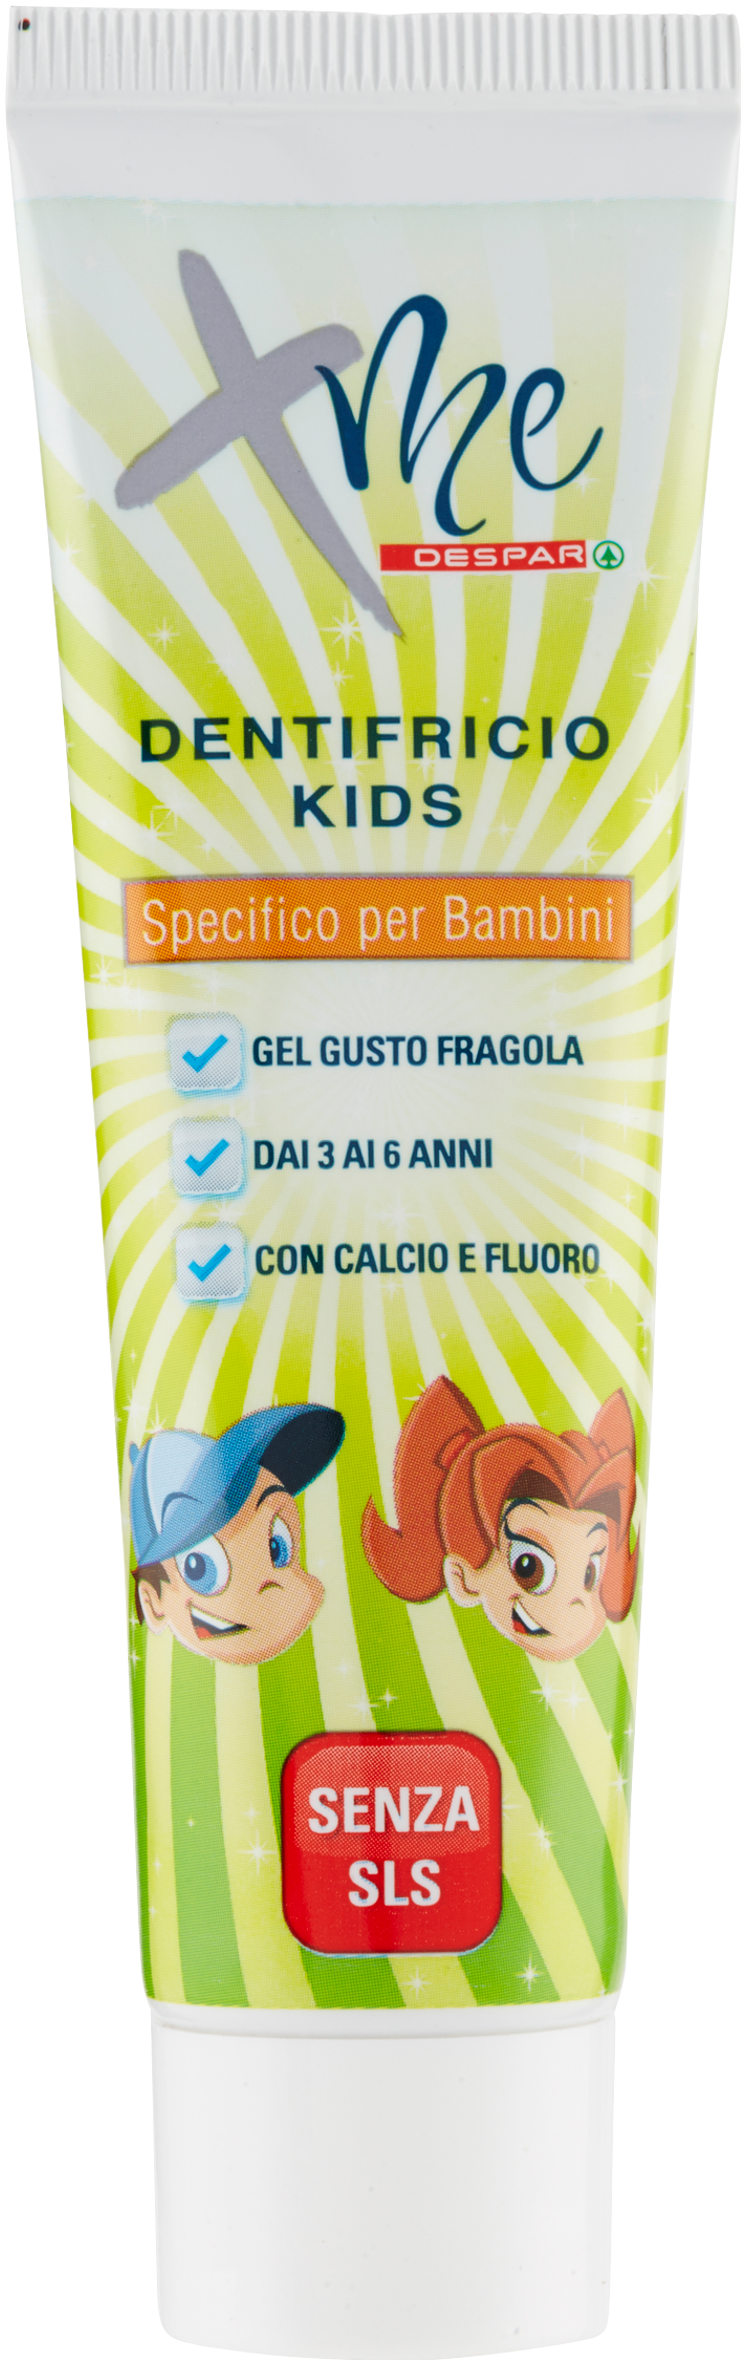 DENTIFRICIO XME DESPAR 50ML KIDS